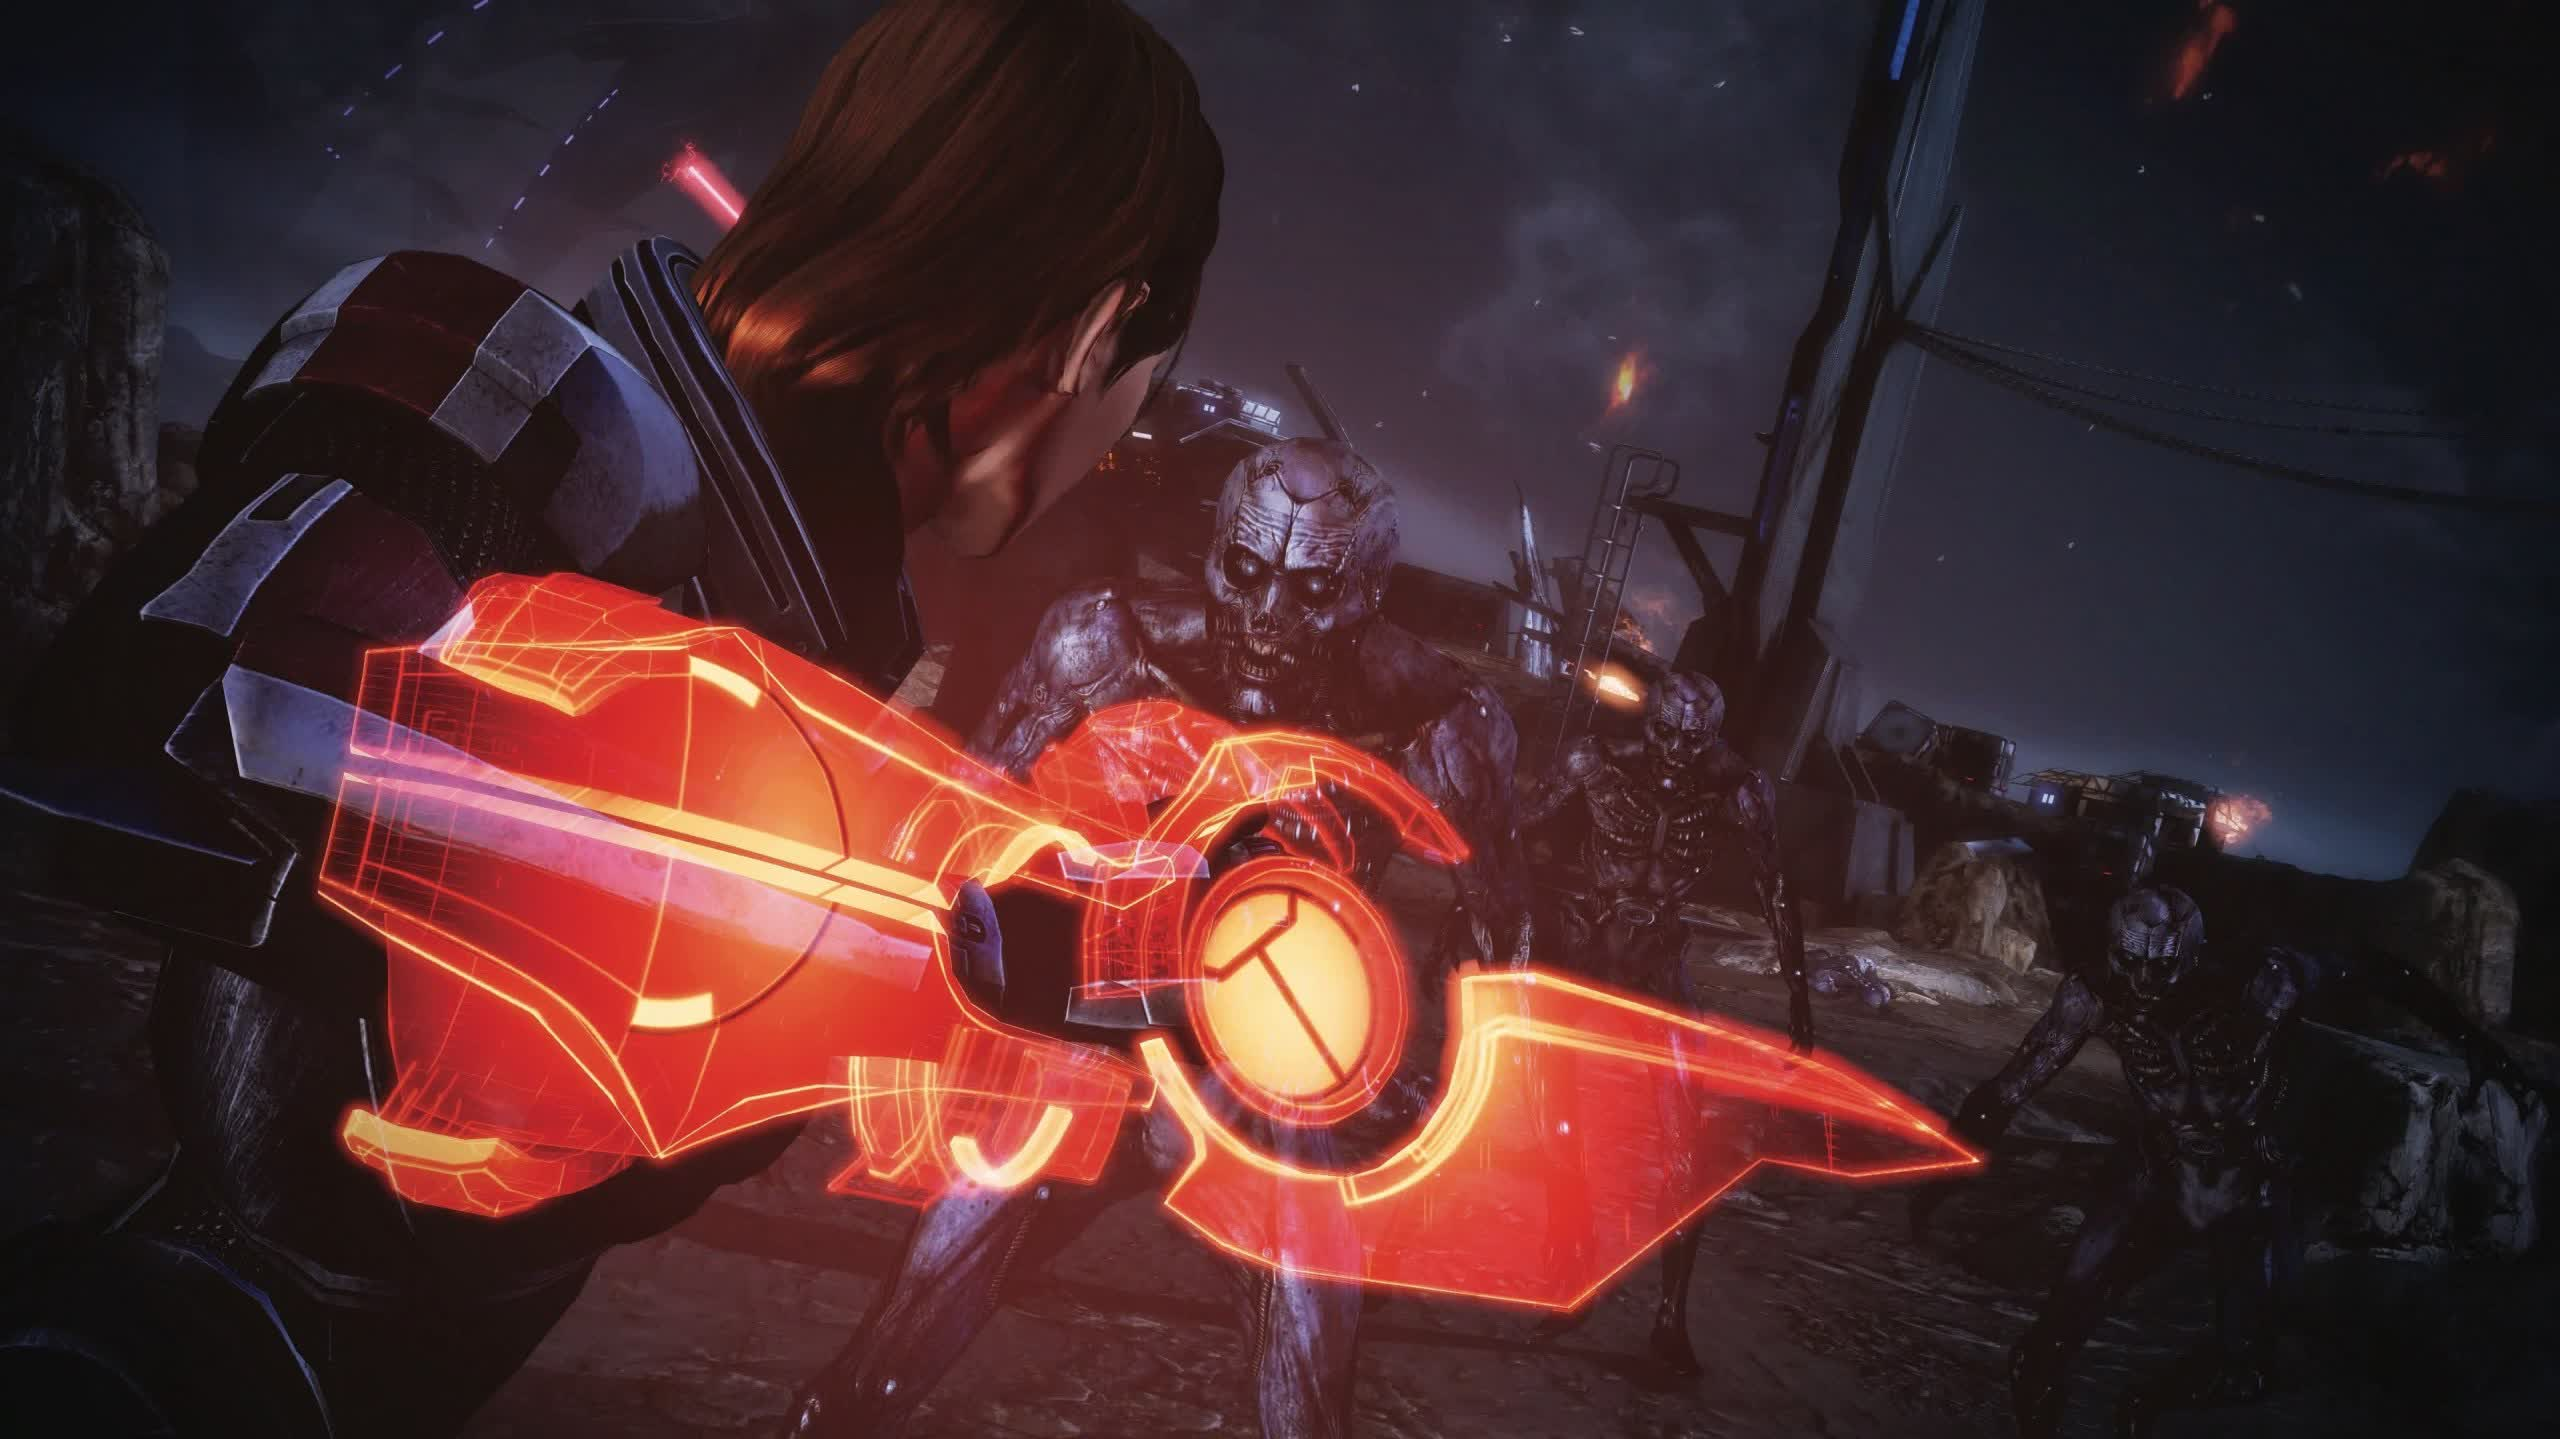 BioWare lays out what it did to improve gameplay in 'Mass Effect Legendary Edition'